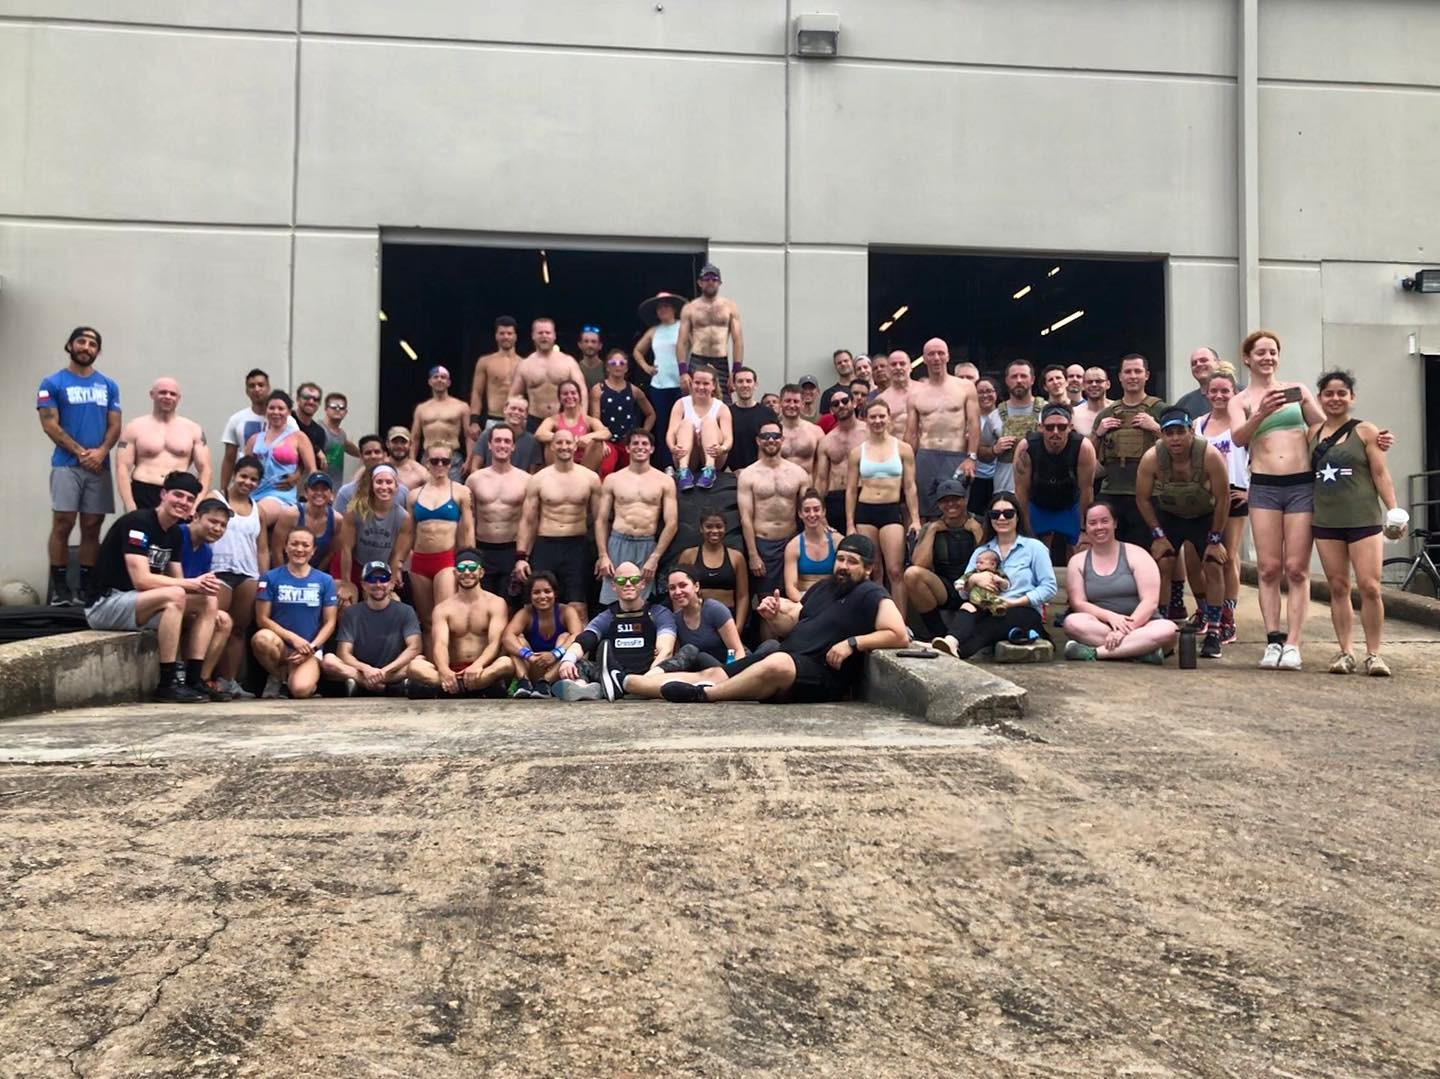 Heres is a picture who participated in Murph on Memorial Day.  With all of you help we donated $455 to the National Coalition of Homeless Veterans.  Nice work!